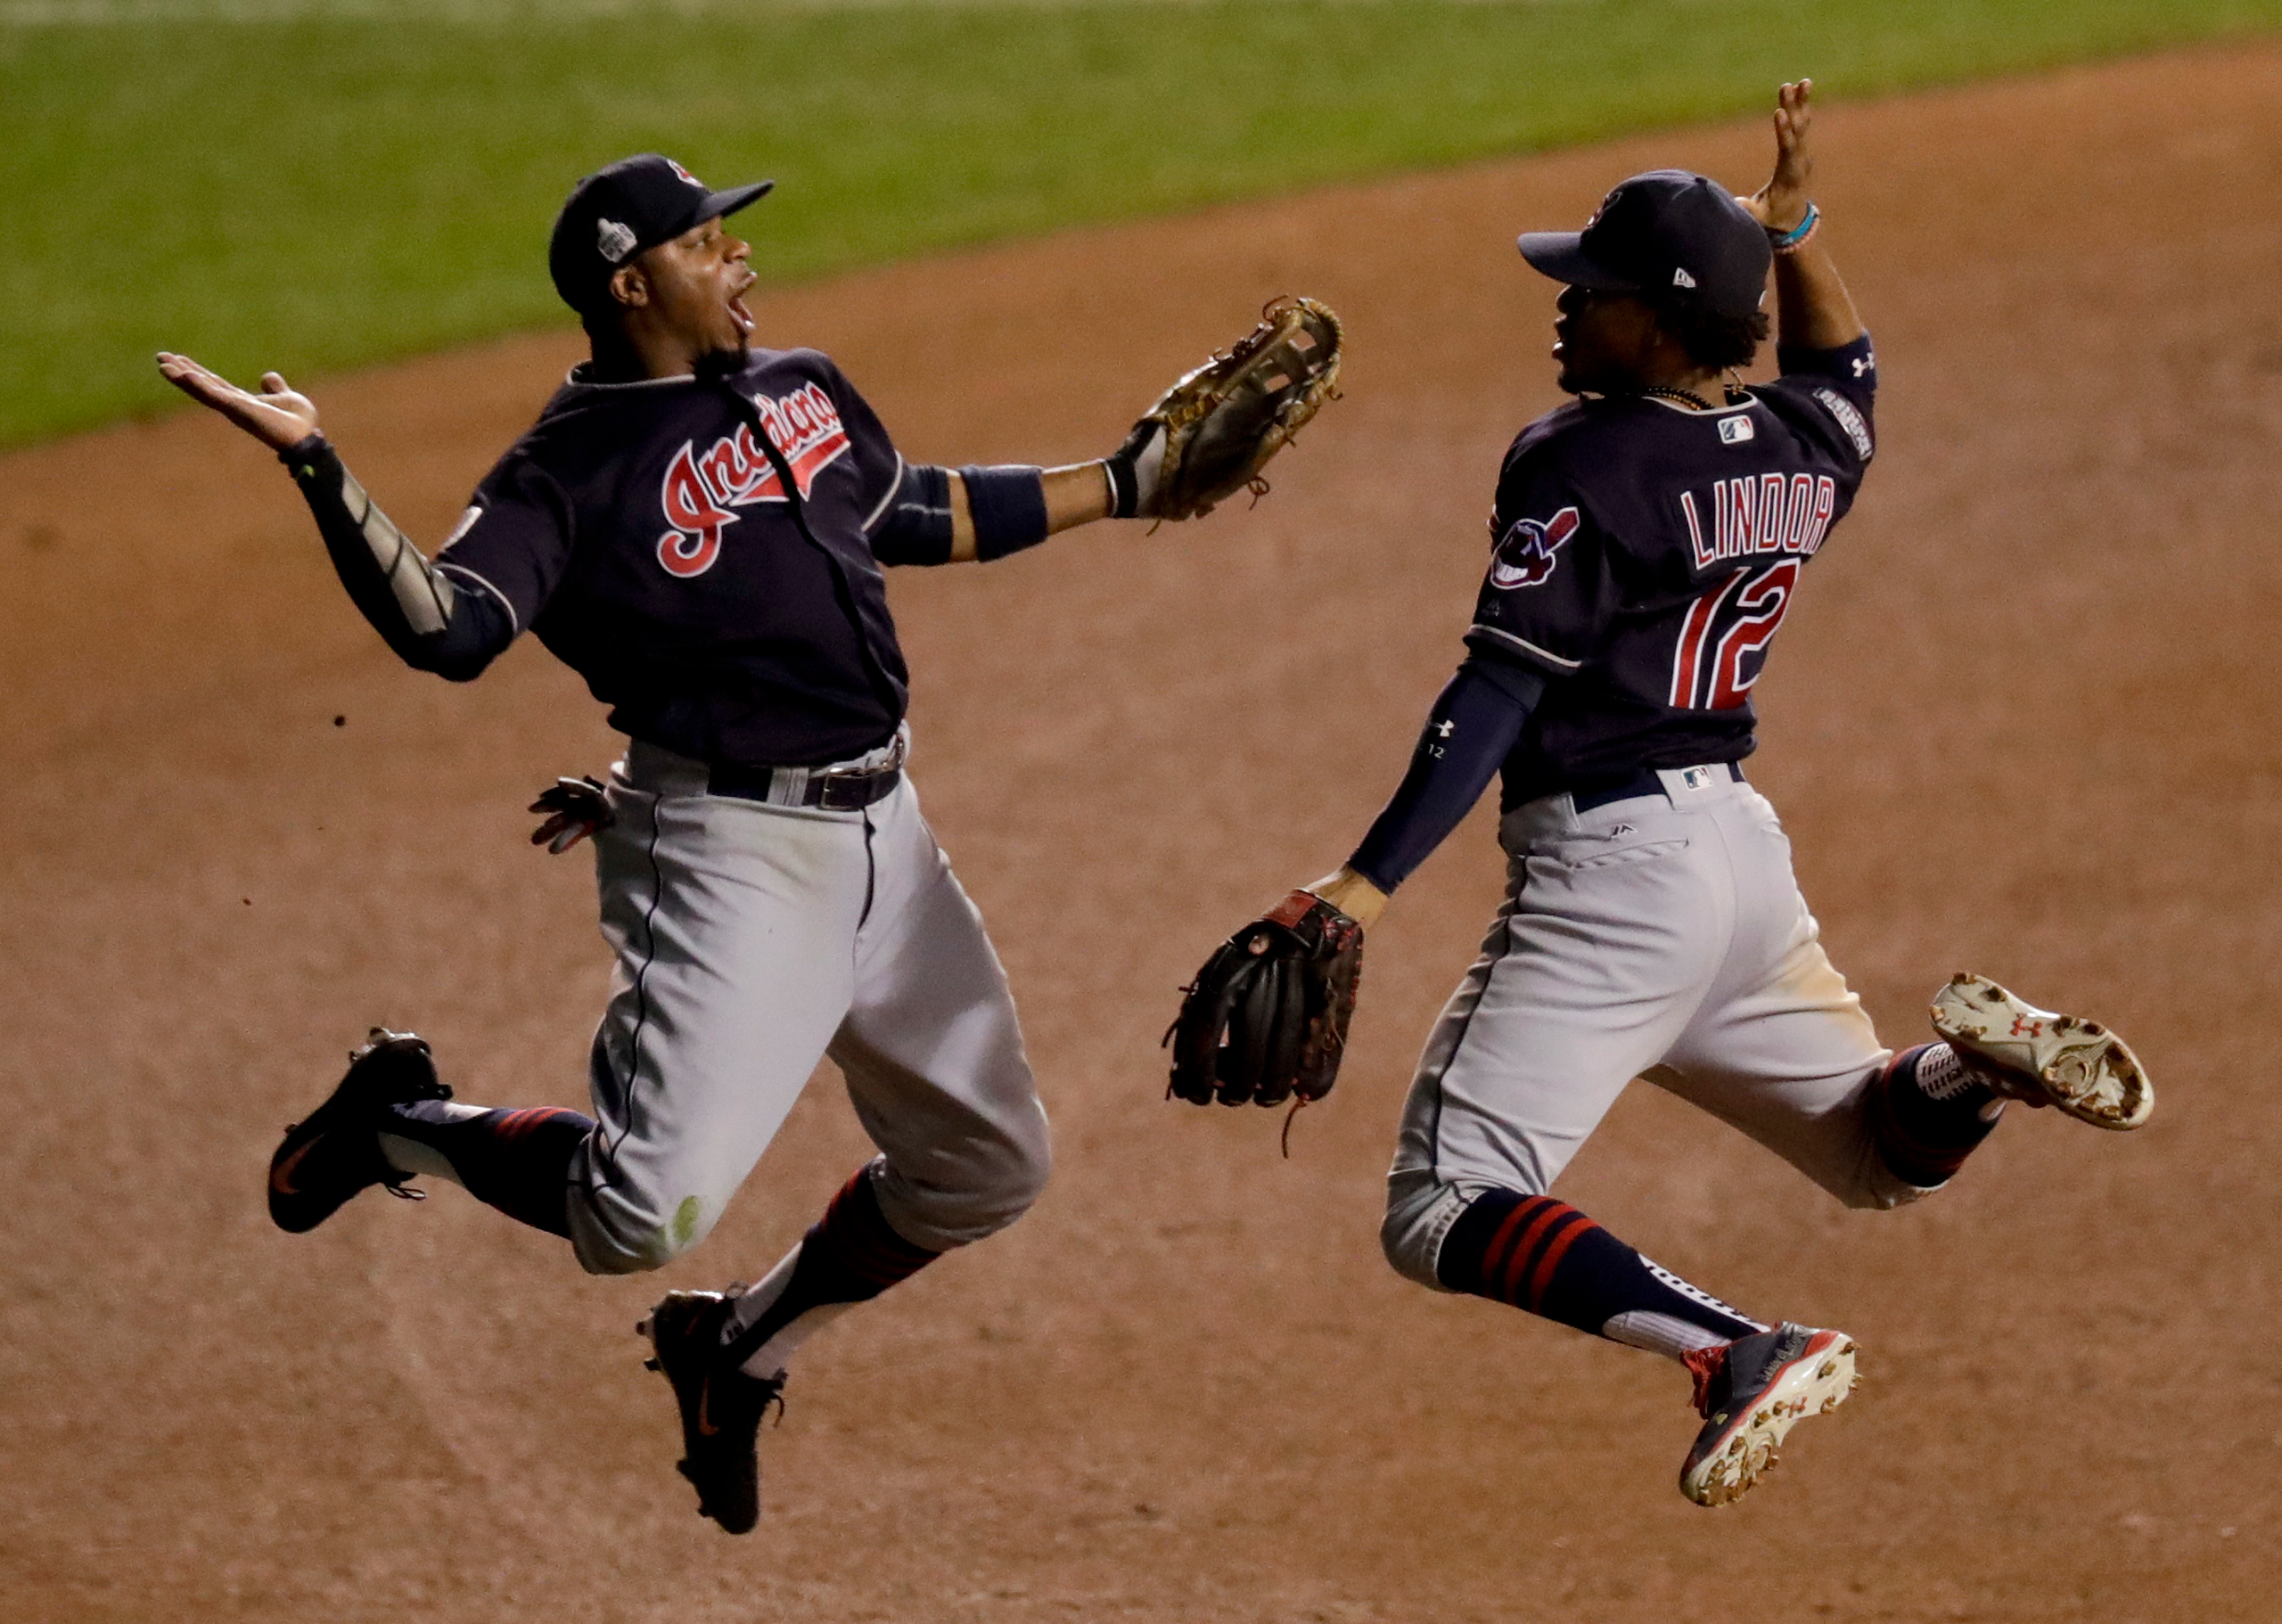 Cleveland Indians left fielder Rajai Davis, left, and shortstop Francisco Lindor celebrate their win after Game 4 of the Major League Baseball World Series against the Chicago Cubs on Oct. 29, 2016, in Chicago.